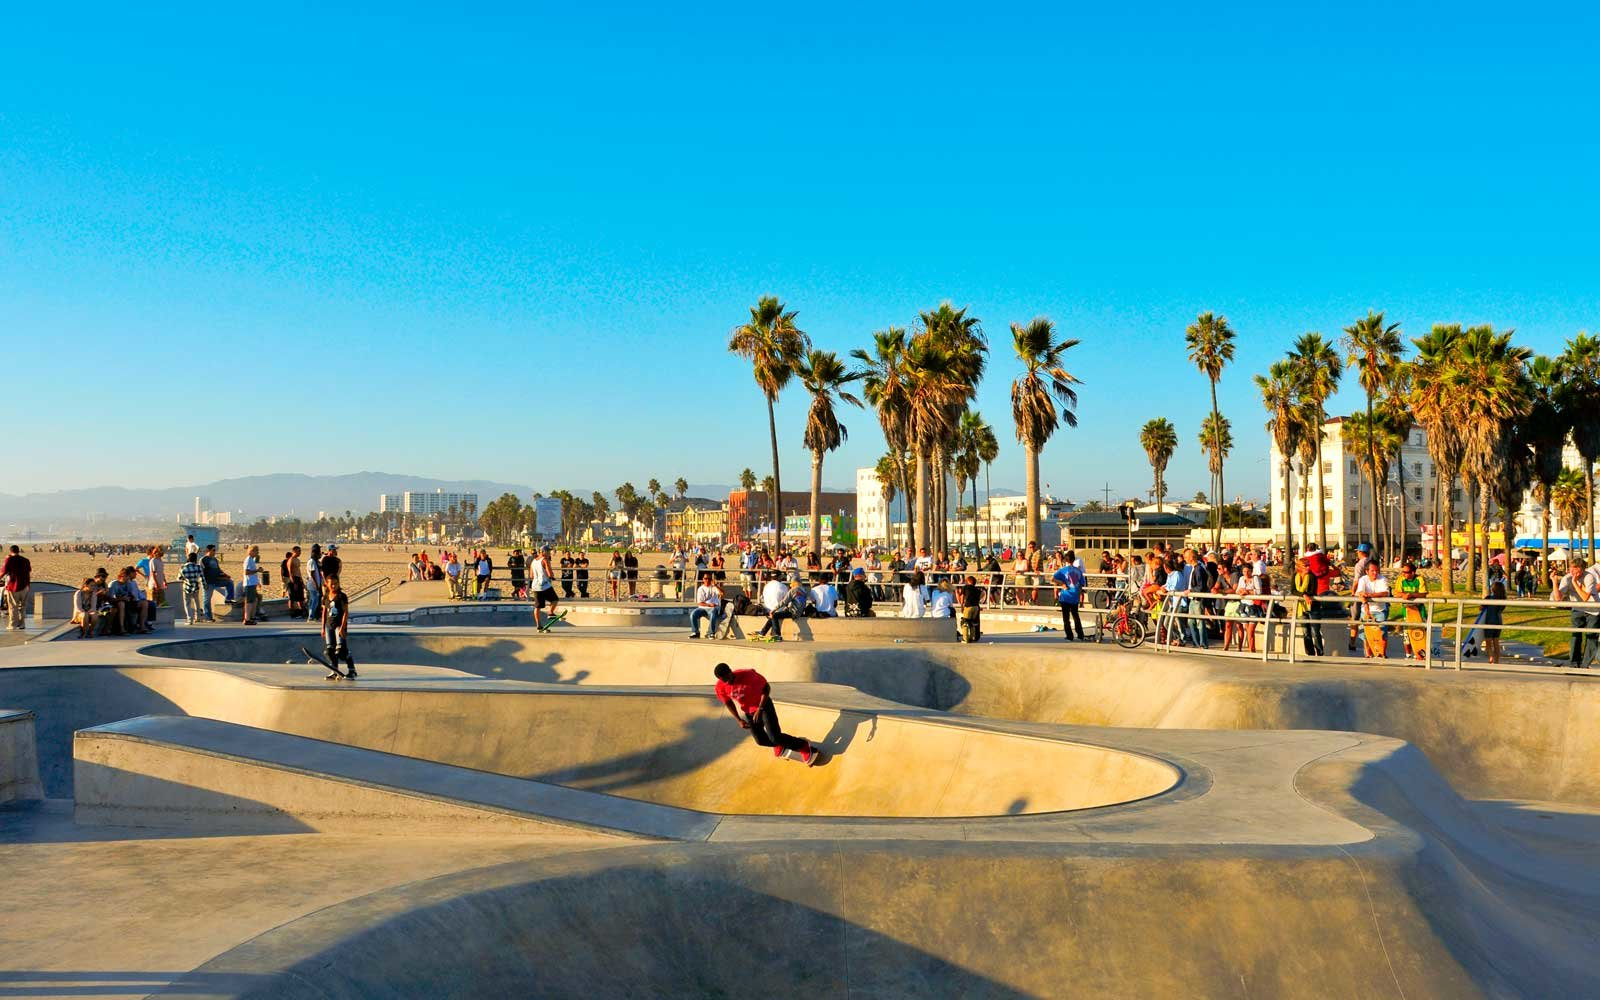 Skatepark of Venice Beach in Venice, California